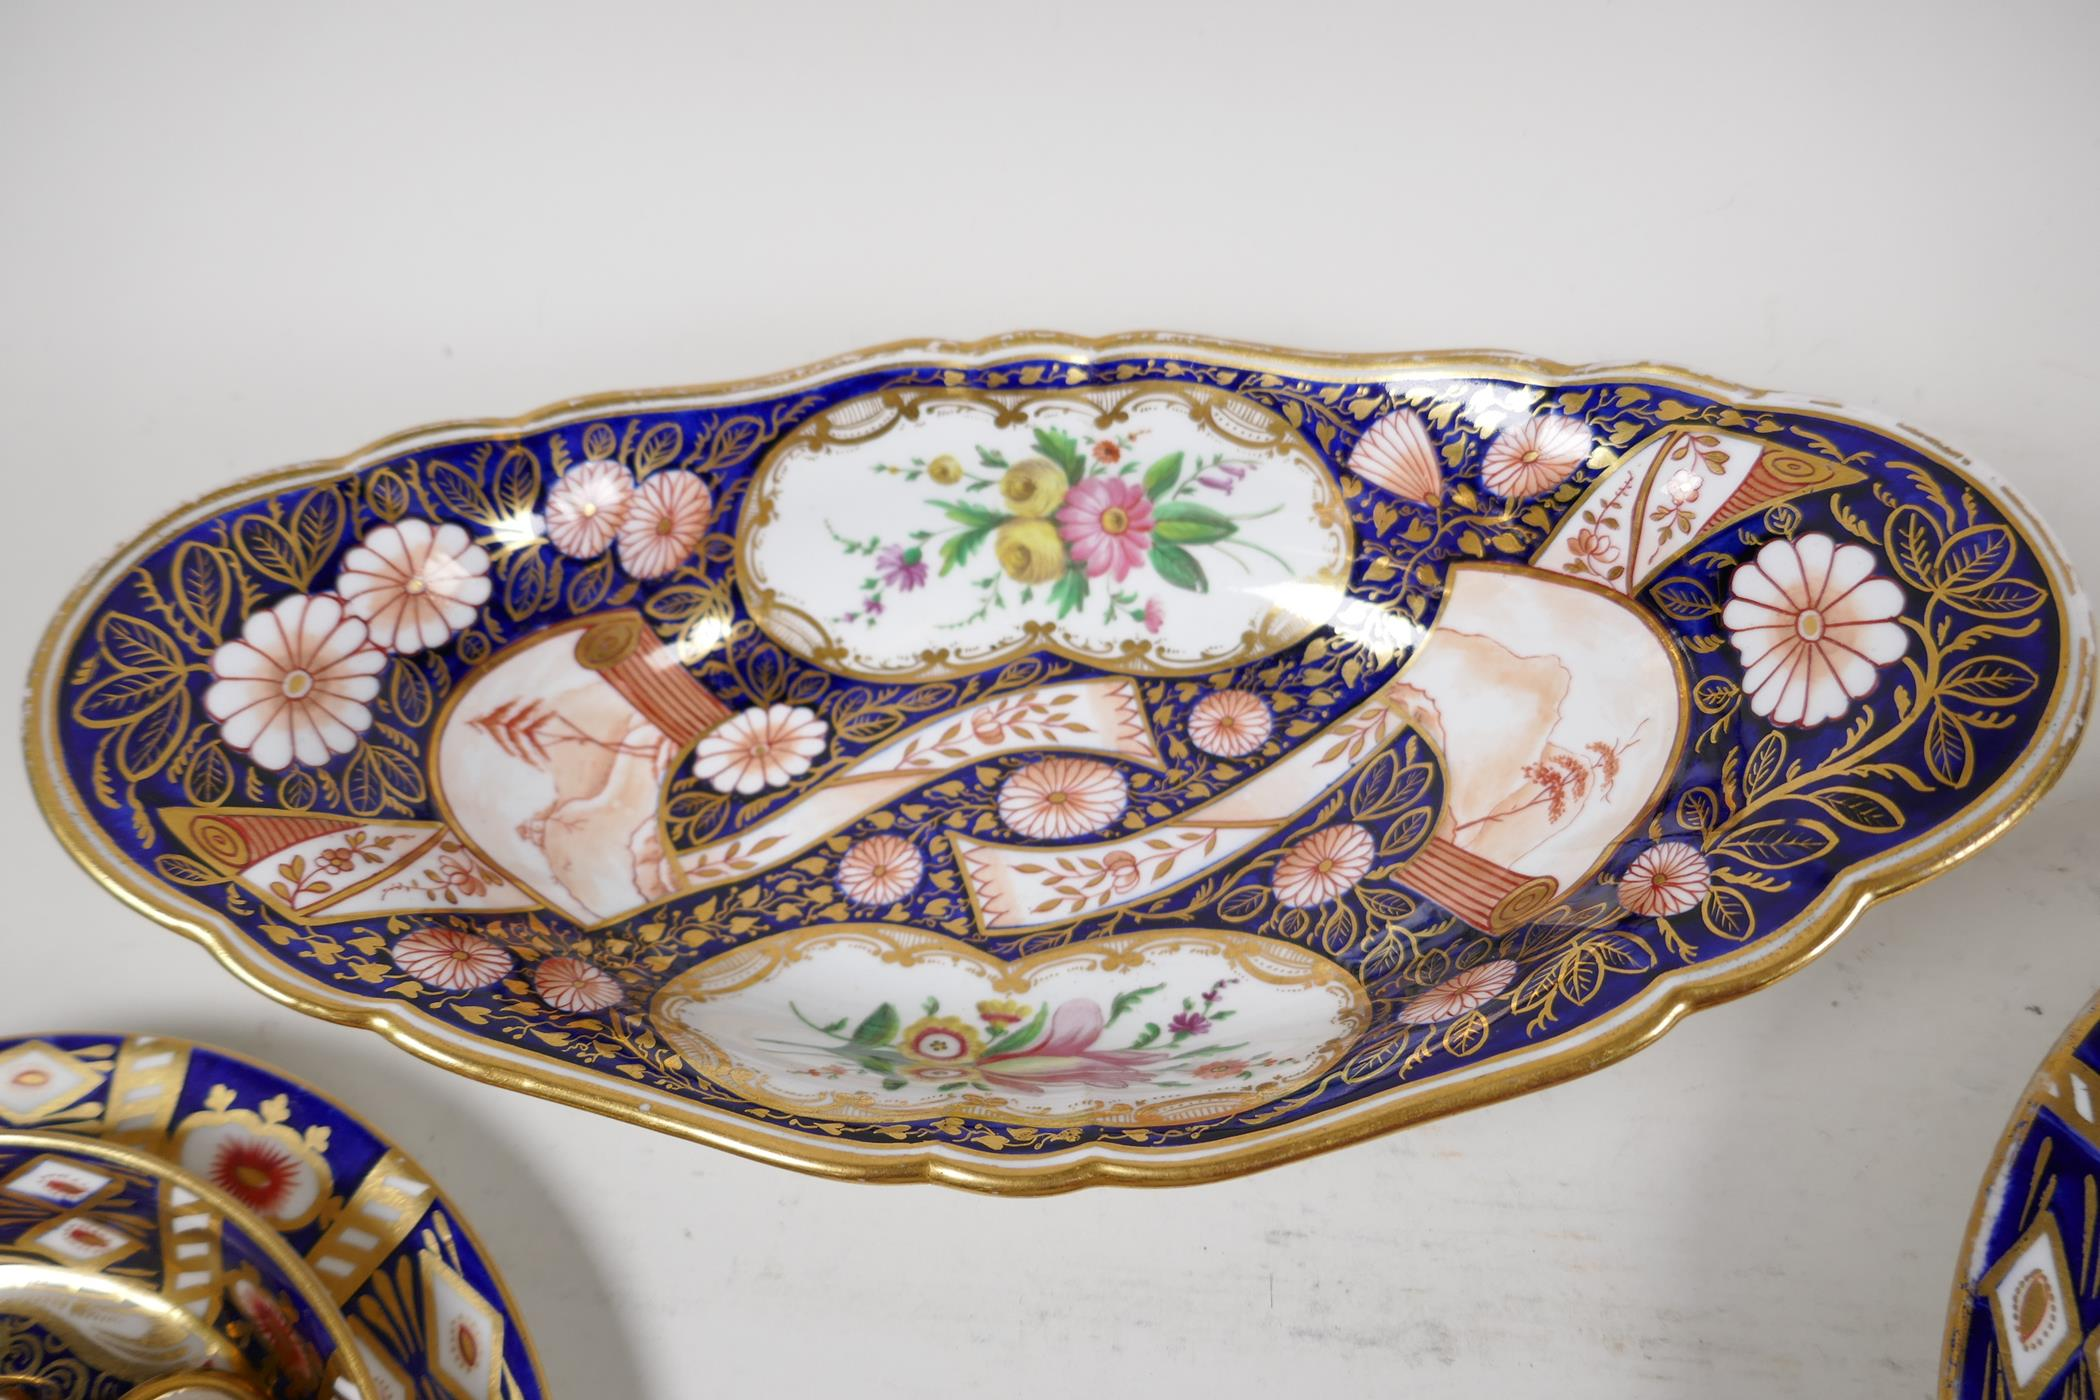 """Two Derby Japan pattern porcelain trios, a plate 8"""", and an oval bowl - Image 4 of 5"""